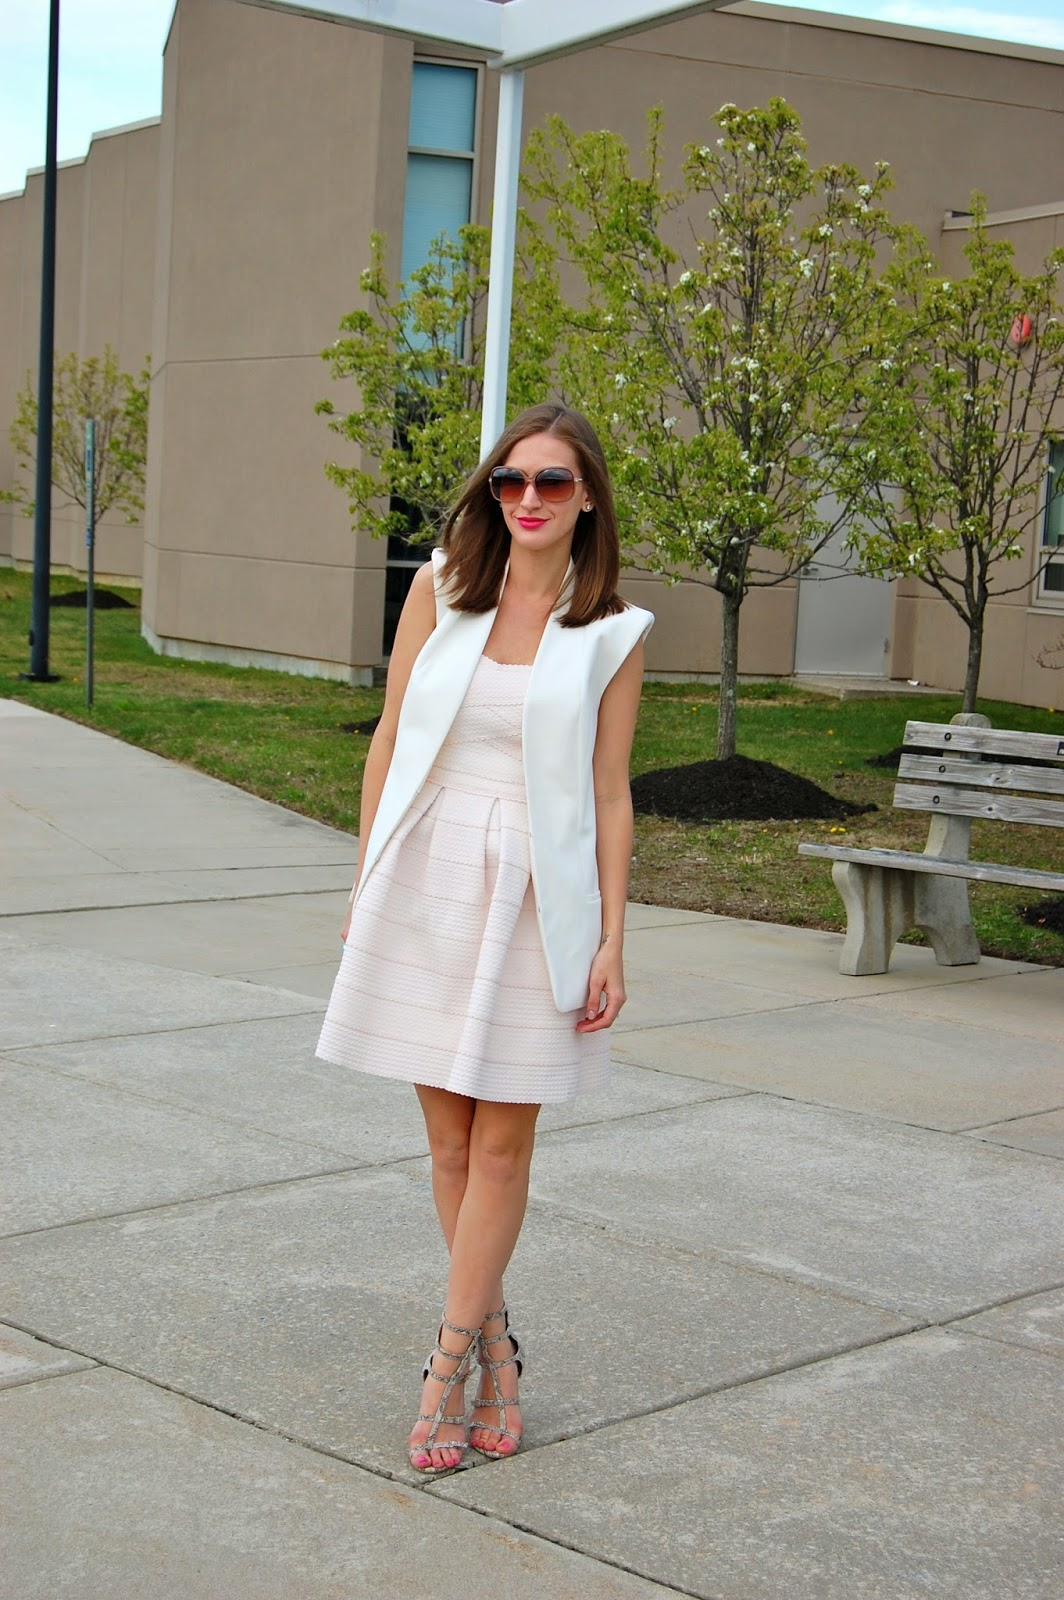 Wearing Trouve sema detail power vest from Nordstrom, Francesca's bandaged pink strapless dress, Bcbgeneration manci sandals, spring dress